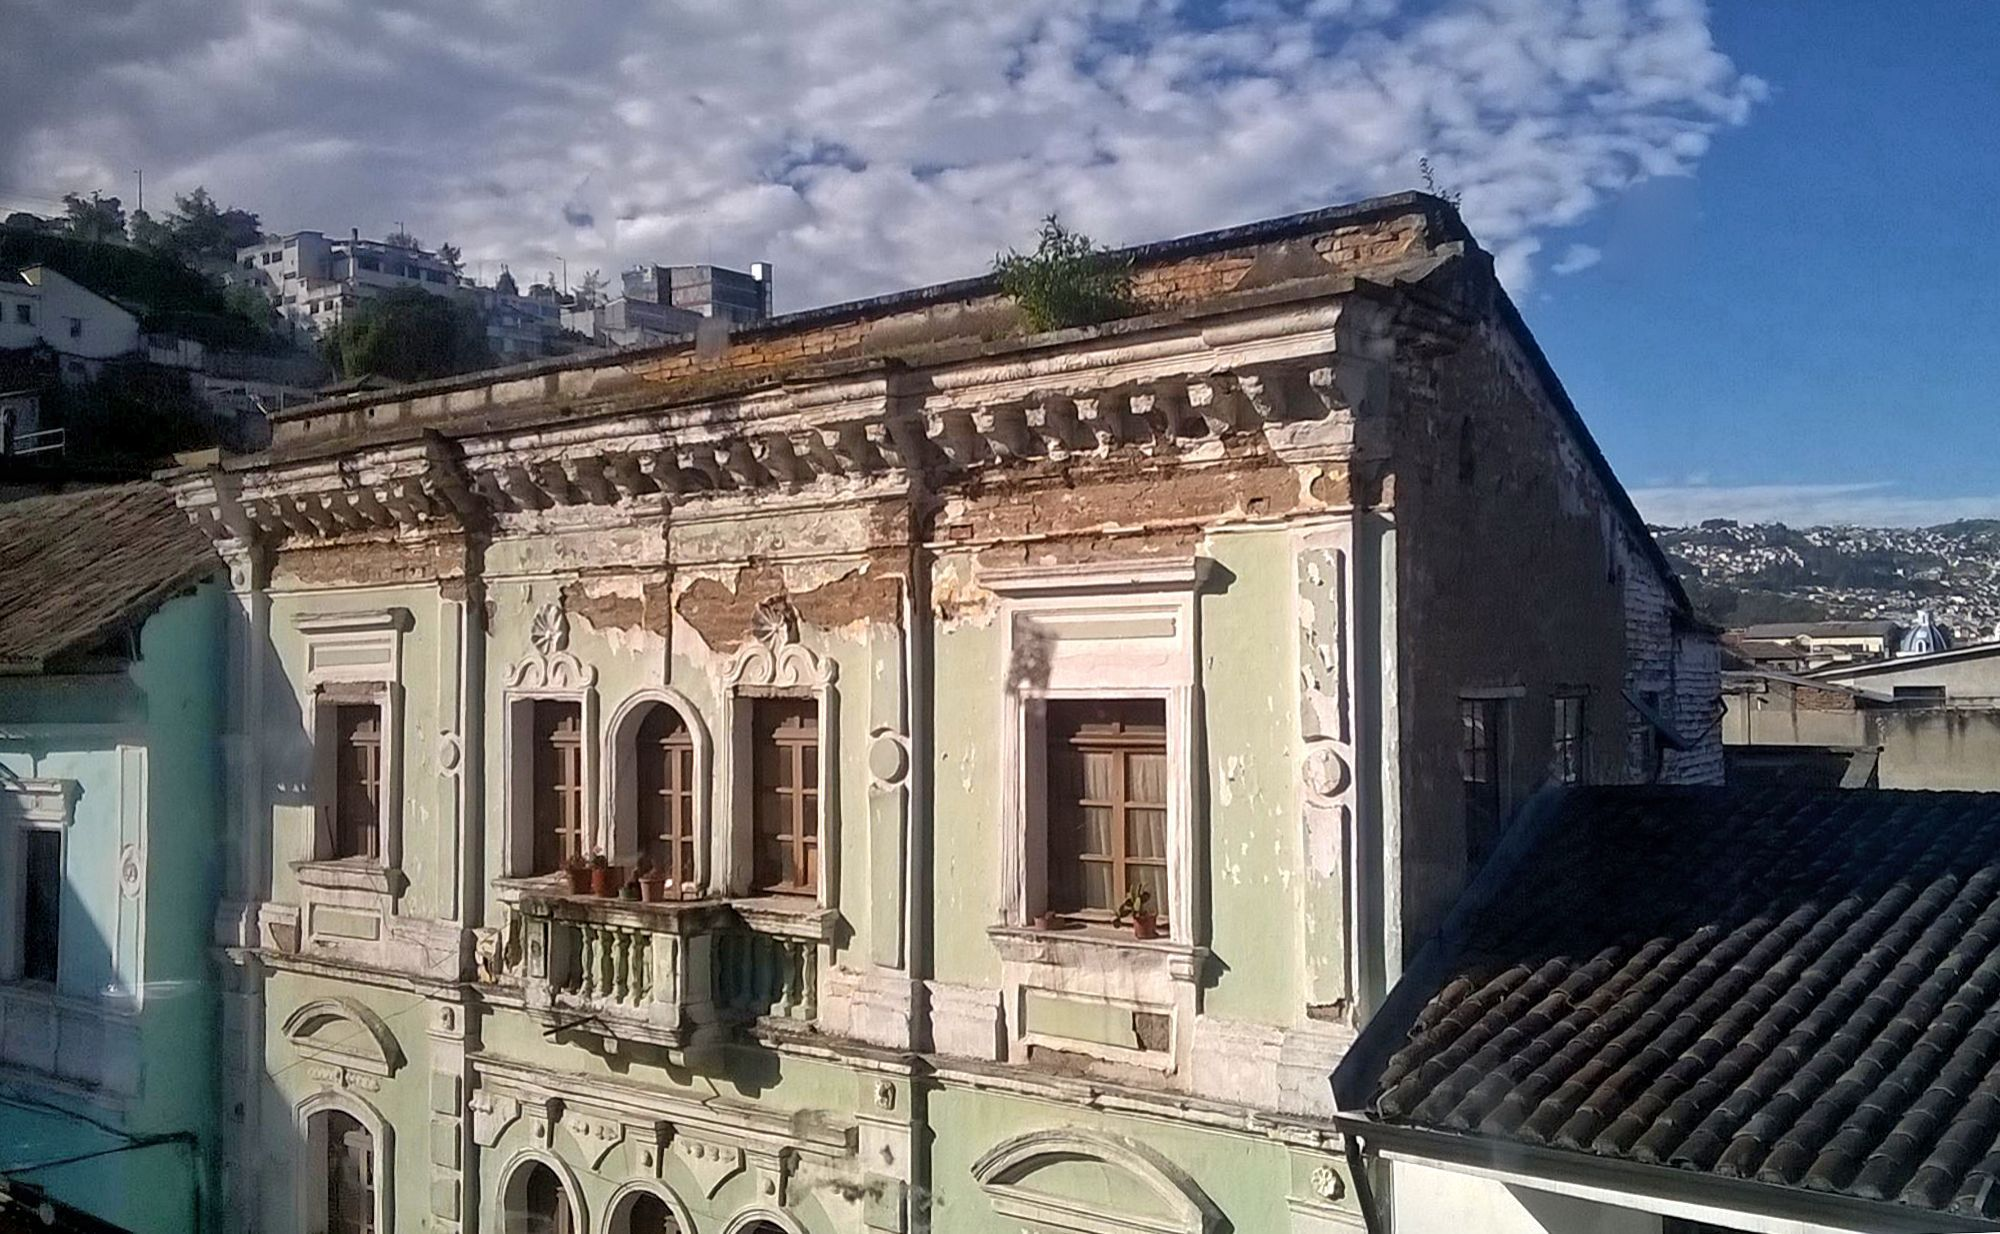 Old building in Quito